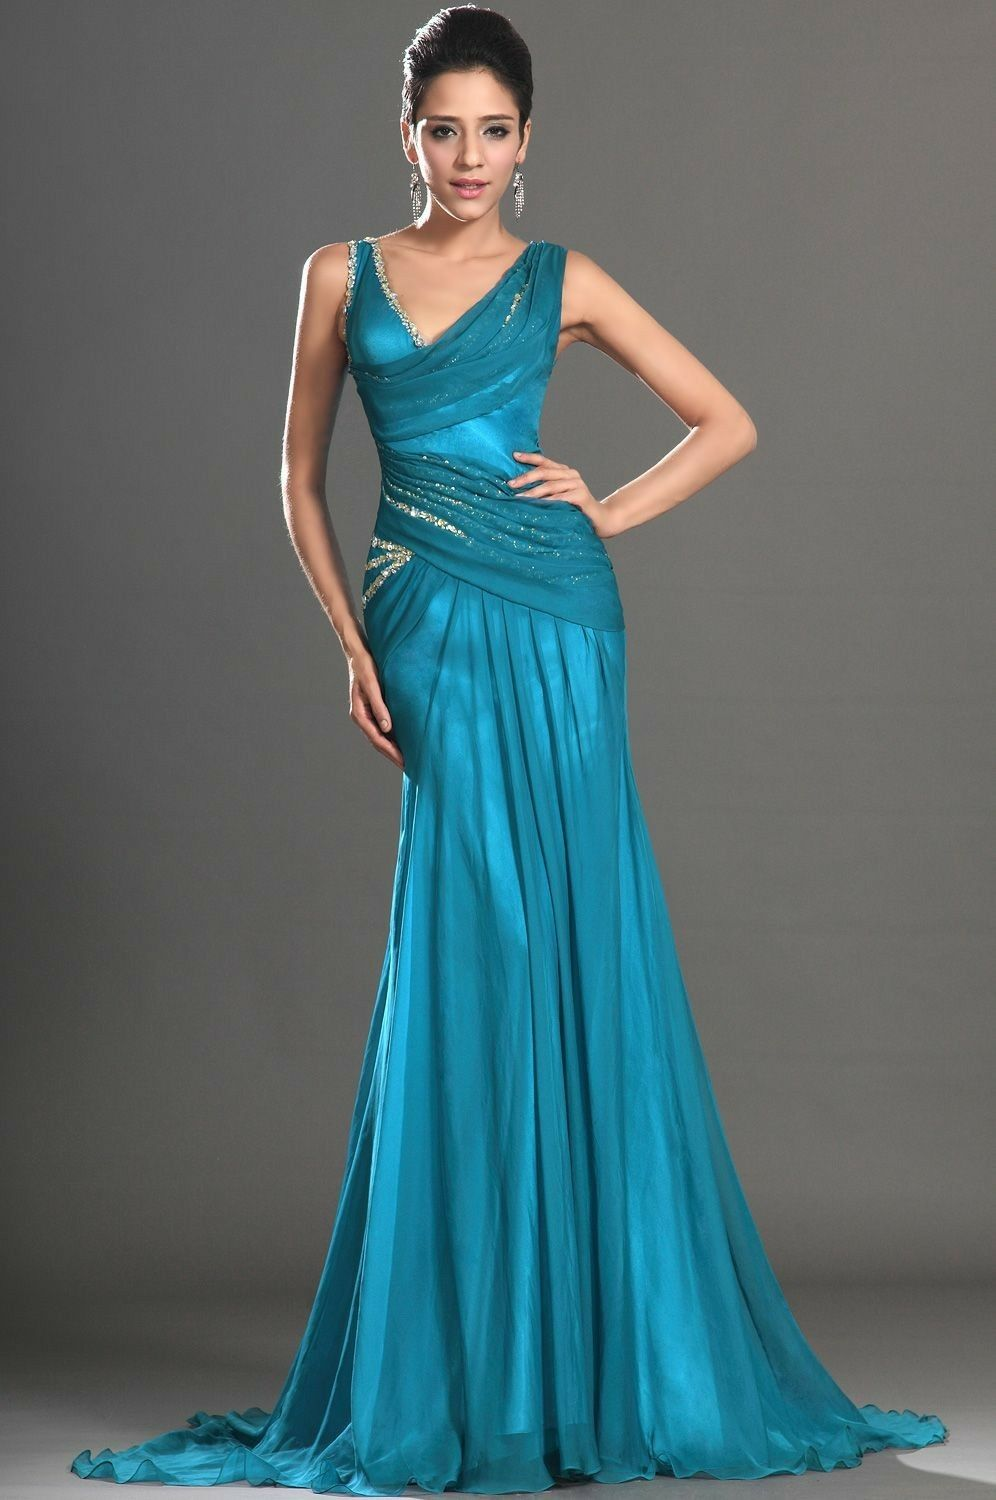 Turquoise gowns pinterest turquoise and gowns